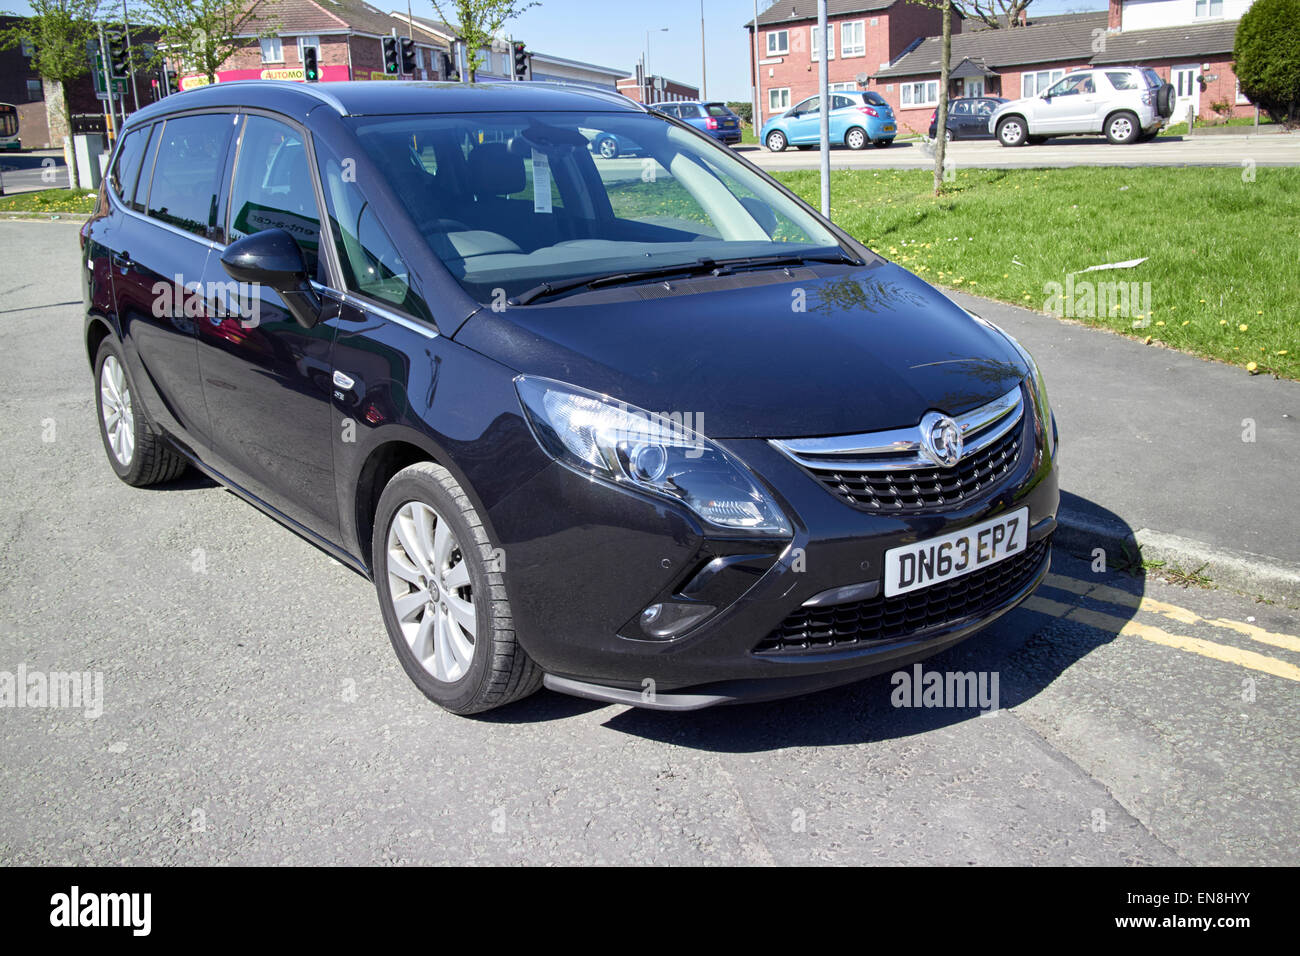 vauxhall safira mpv parked on double yellow lines in residential area of england uk - Stock Image